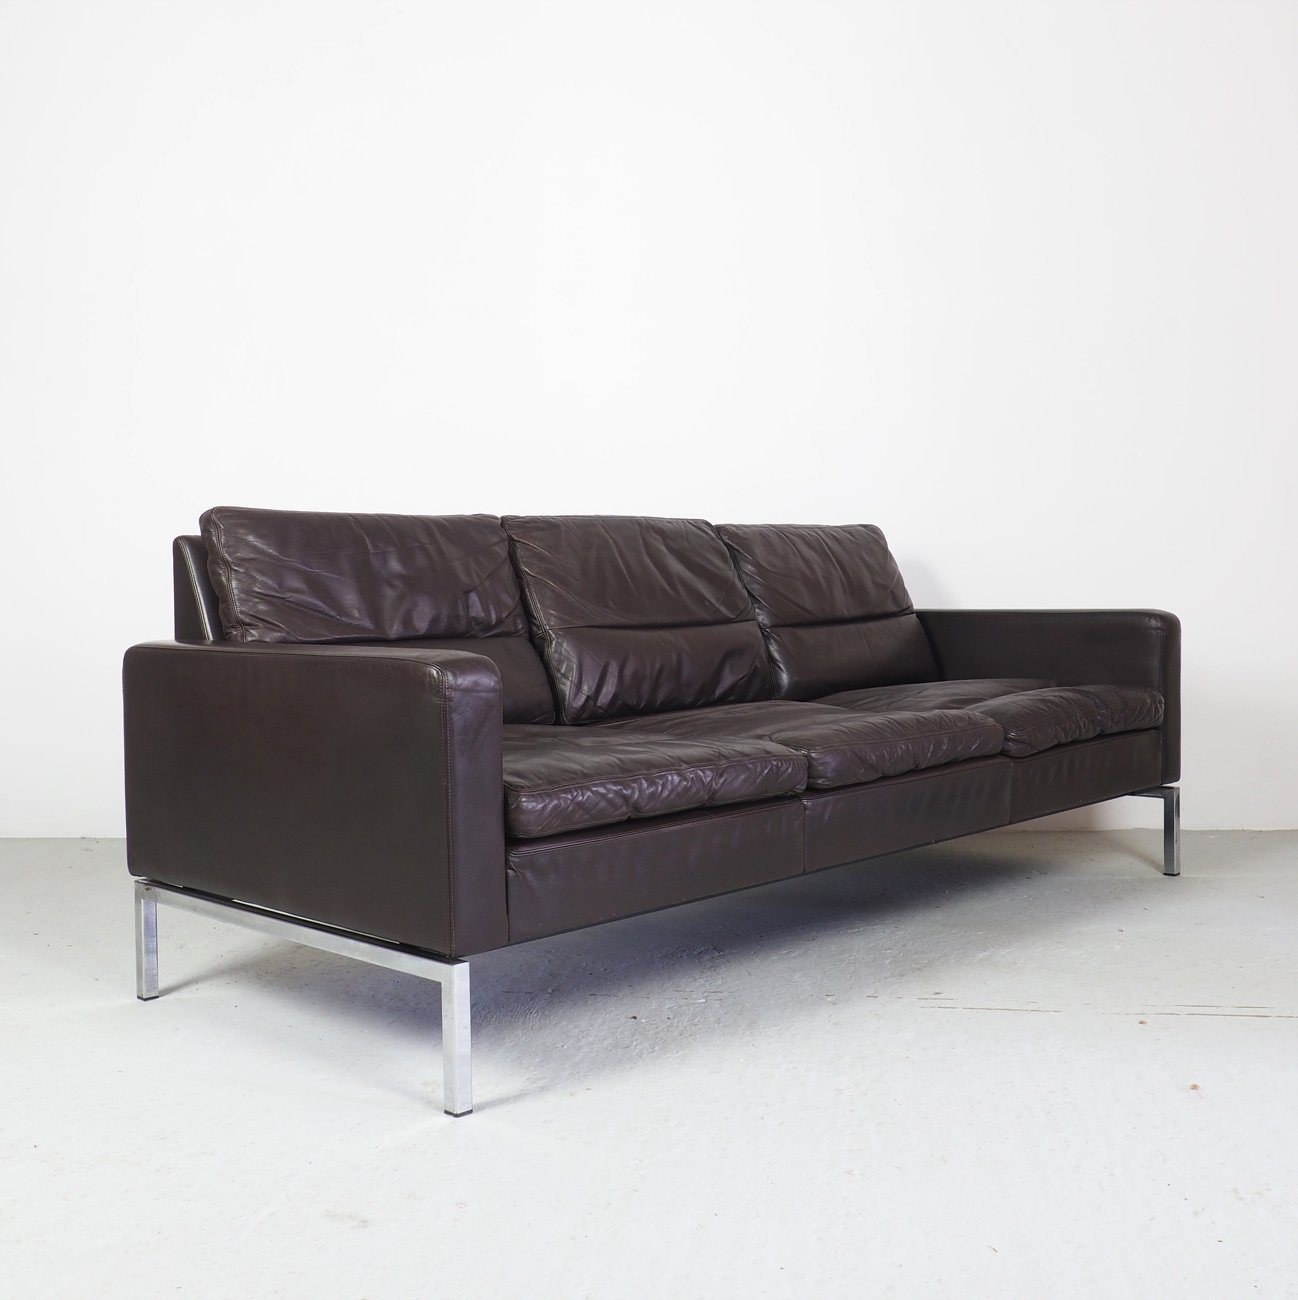 Vintage Conseta sofa by F.W. Möller for Cor, 1960\'s